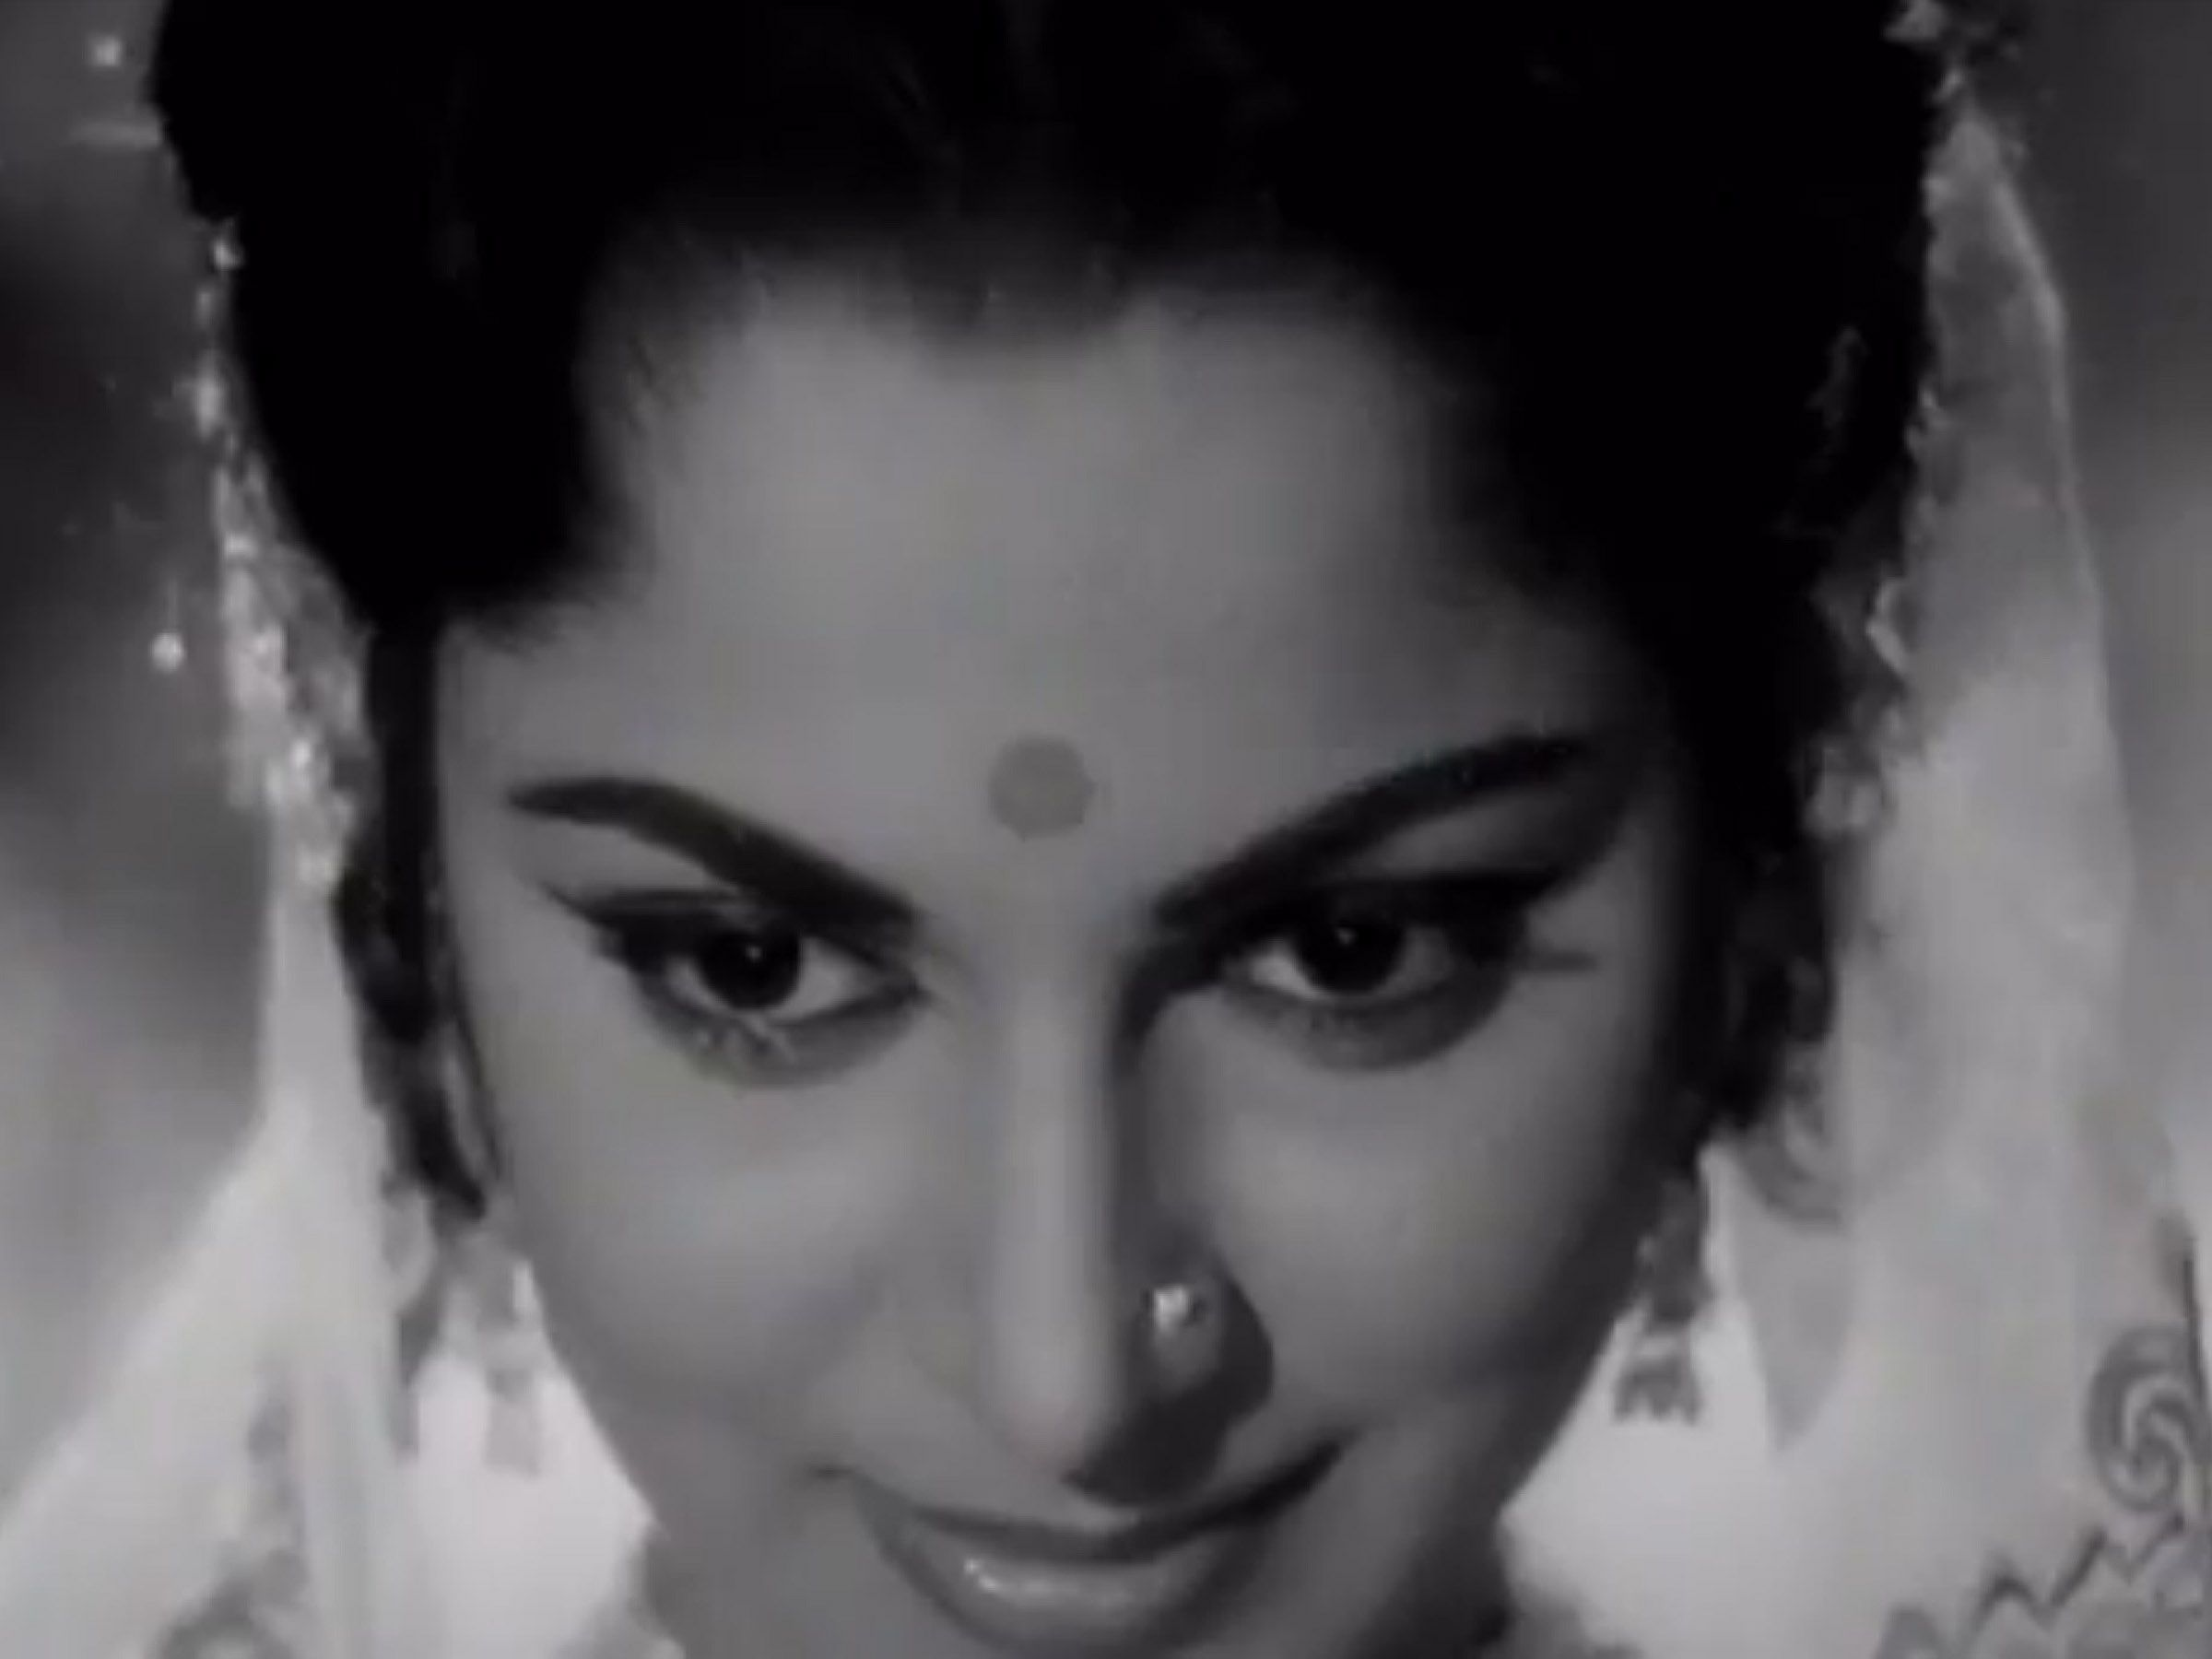 waheeda rehman guidewaheeda rehman biography, waheeda rehman, waheeda rehman songs, waheeda rehman songs list, waheeda rehman guide, waheeda rehman son, waheeda rehman son sohail, waheeda rehman daughter, waheeda rehman marriage photos, waheeda rehman husband kanwaljeet singh, waheeda rehman images, waheeda rehman family photos, waheeda rehman movies list, waheeda rehman songs download, waheeda rehman hot, waheeda rehman husband photos